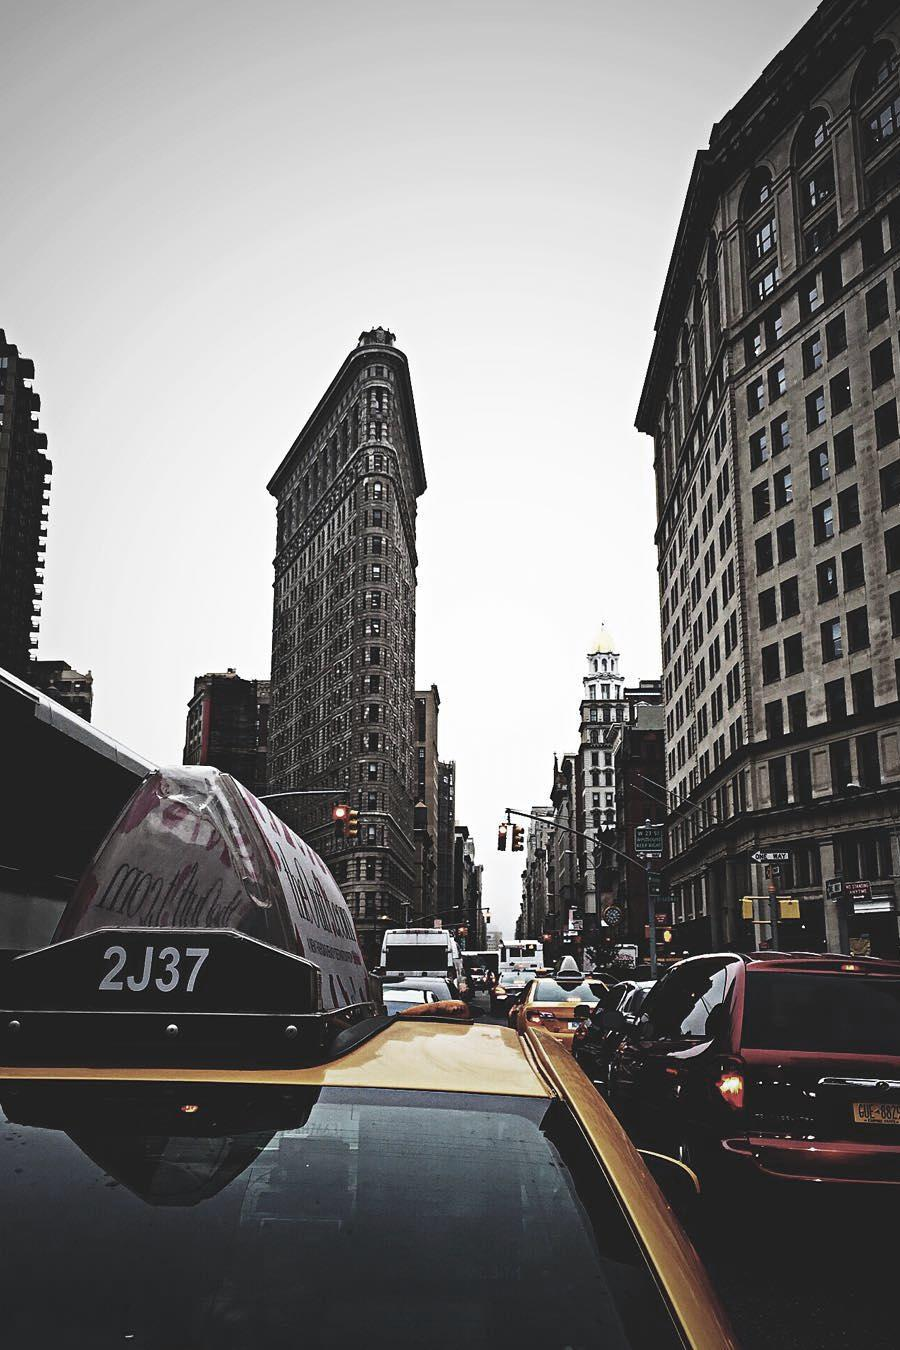 nyc taxi cars traffic city atmosphere house